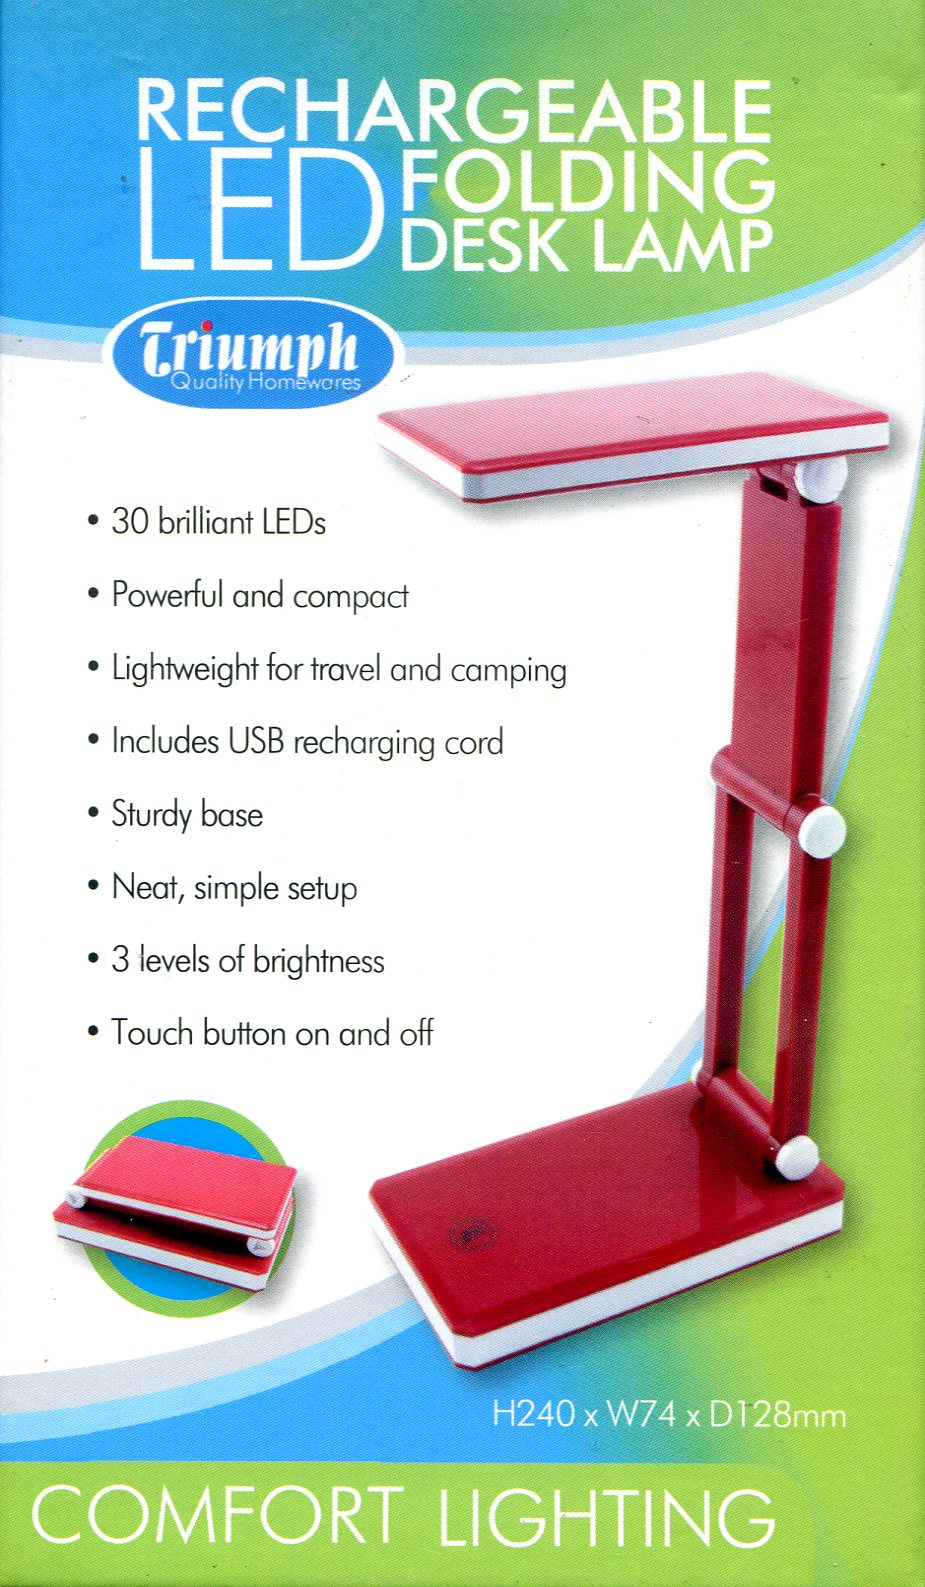 LED Rechargeable Folding Desk Lamp - Red. Triumph Quality Homewares. OD188-R